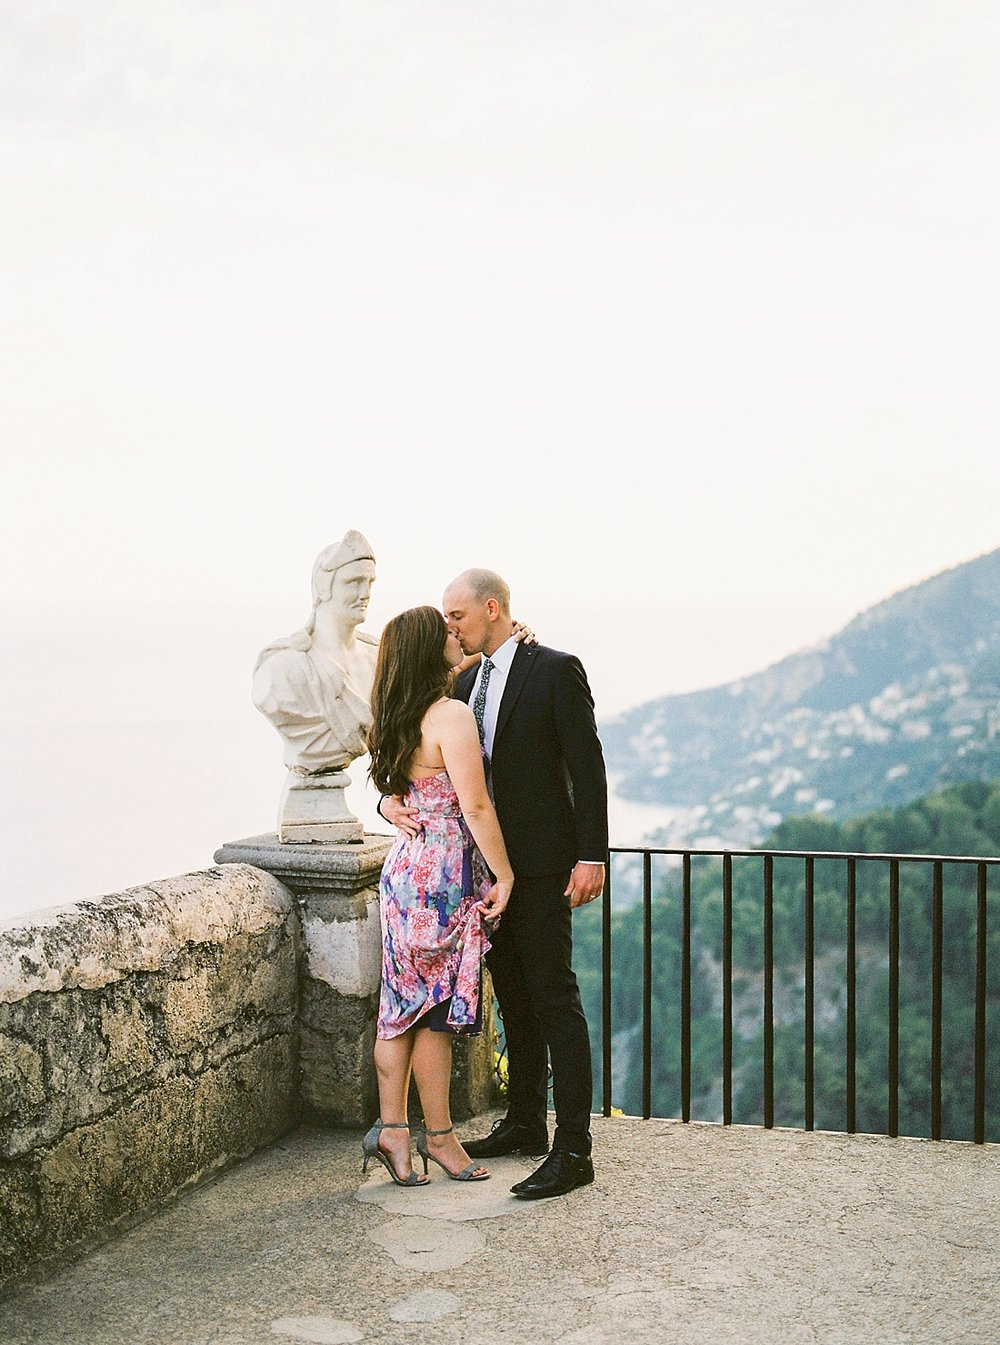 groom in custom trim fit suit at Villa Cimbrone in Ravello Italy for their destination elopement